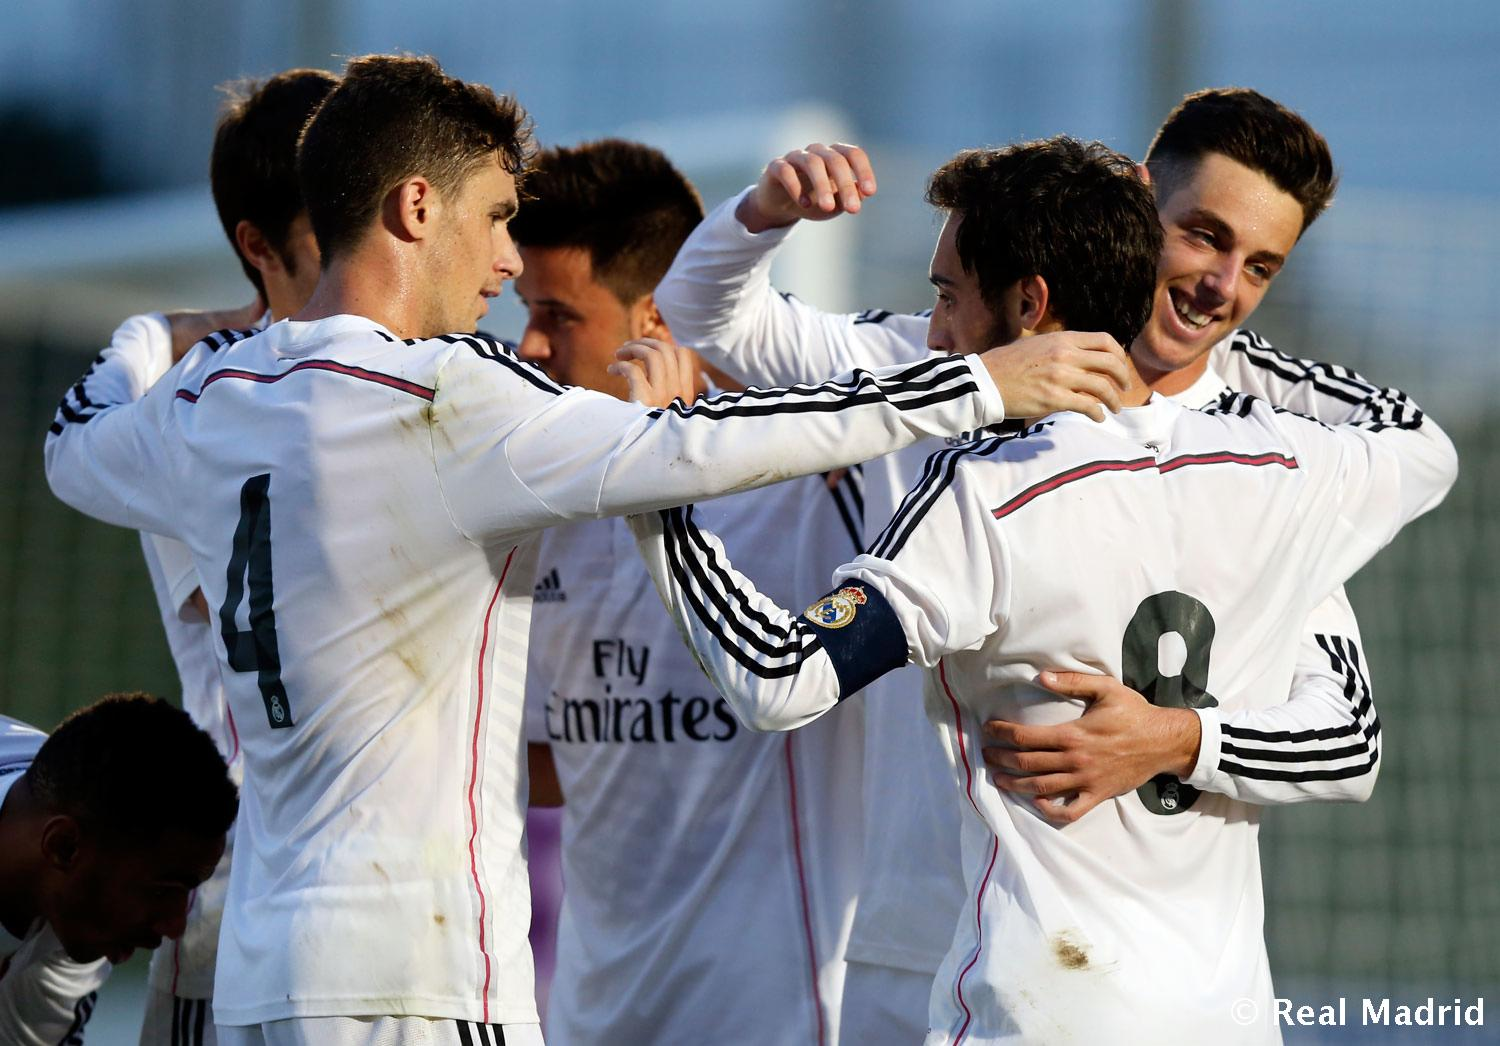 Real Madrid - Real Madrid Castilla - Leioa - 11-10-2014